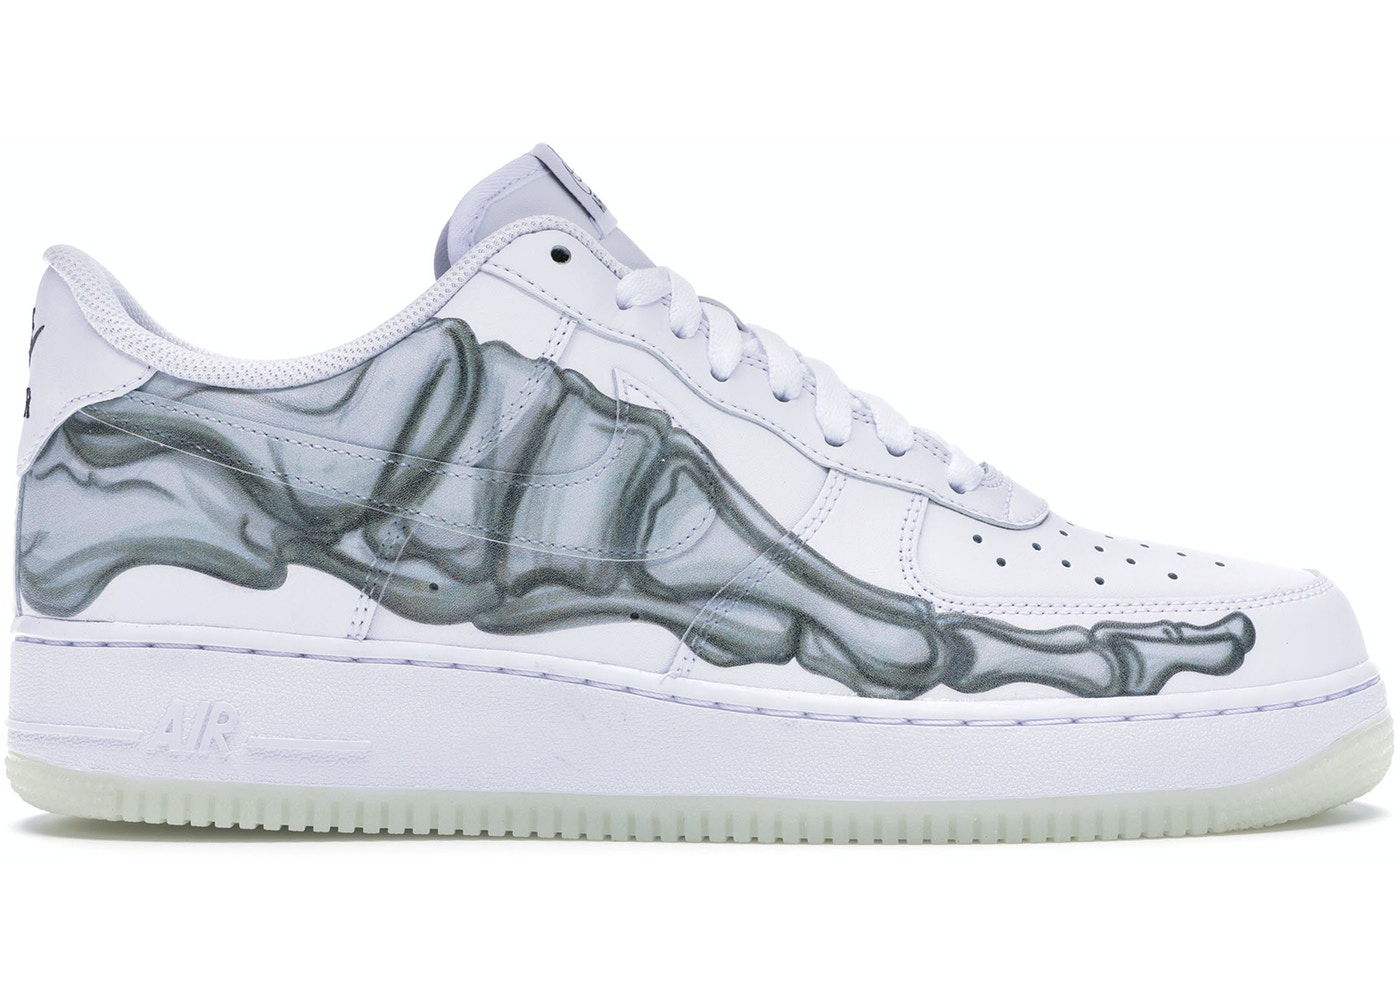 purchase cheap 9d27c cbf8a Air Force 1 Low Skeleton Halloween (2018) - BQ7541-100